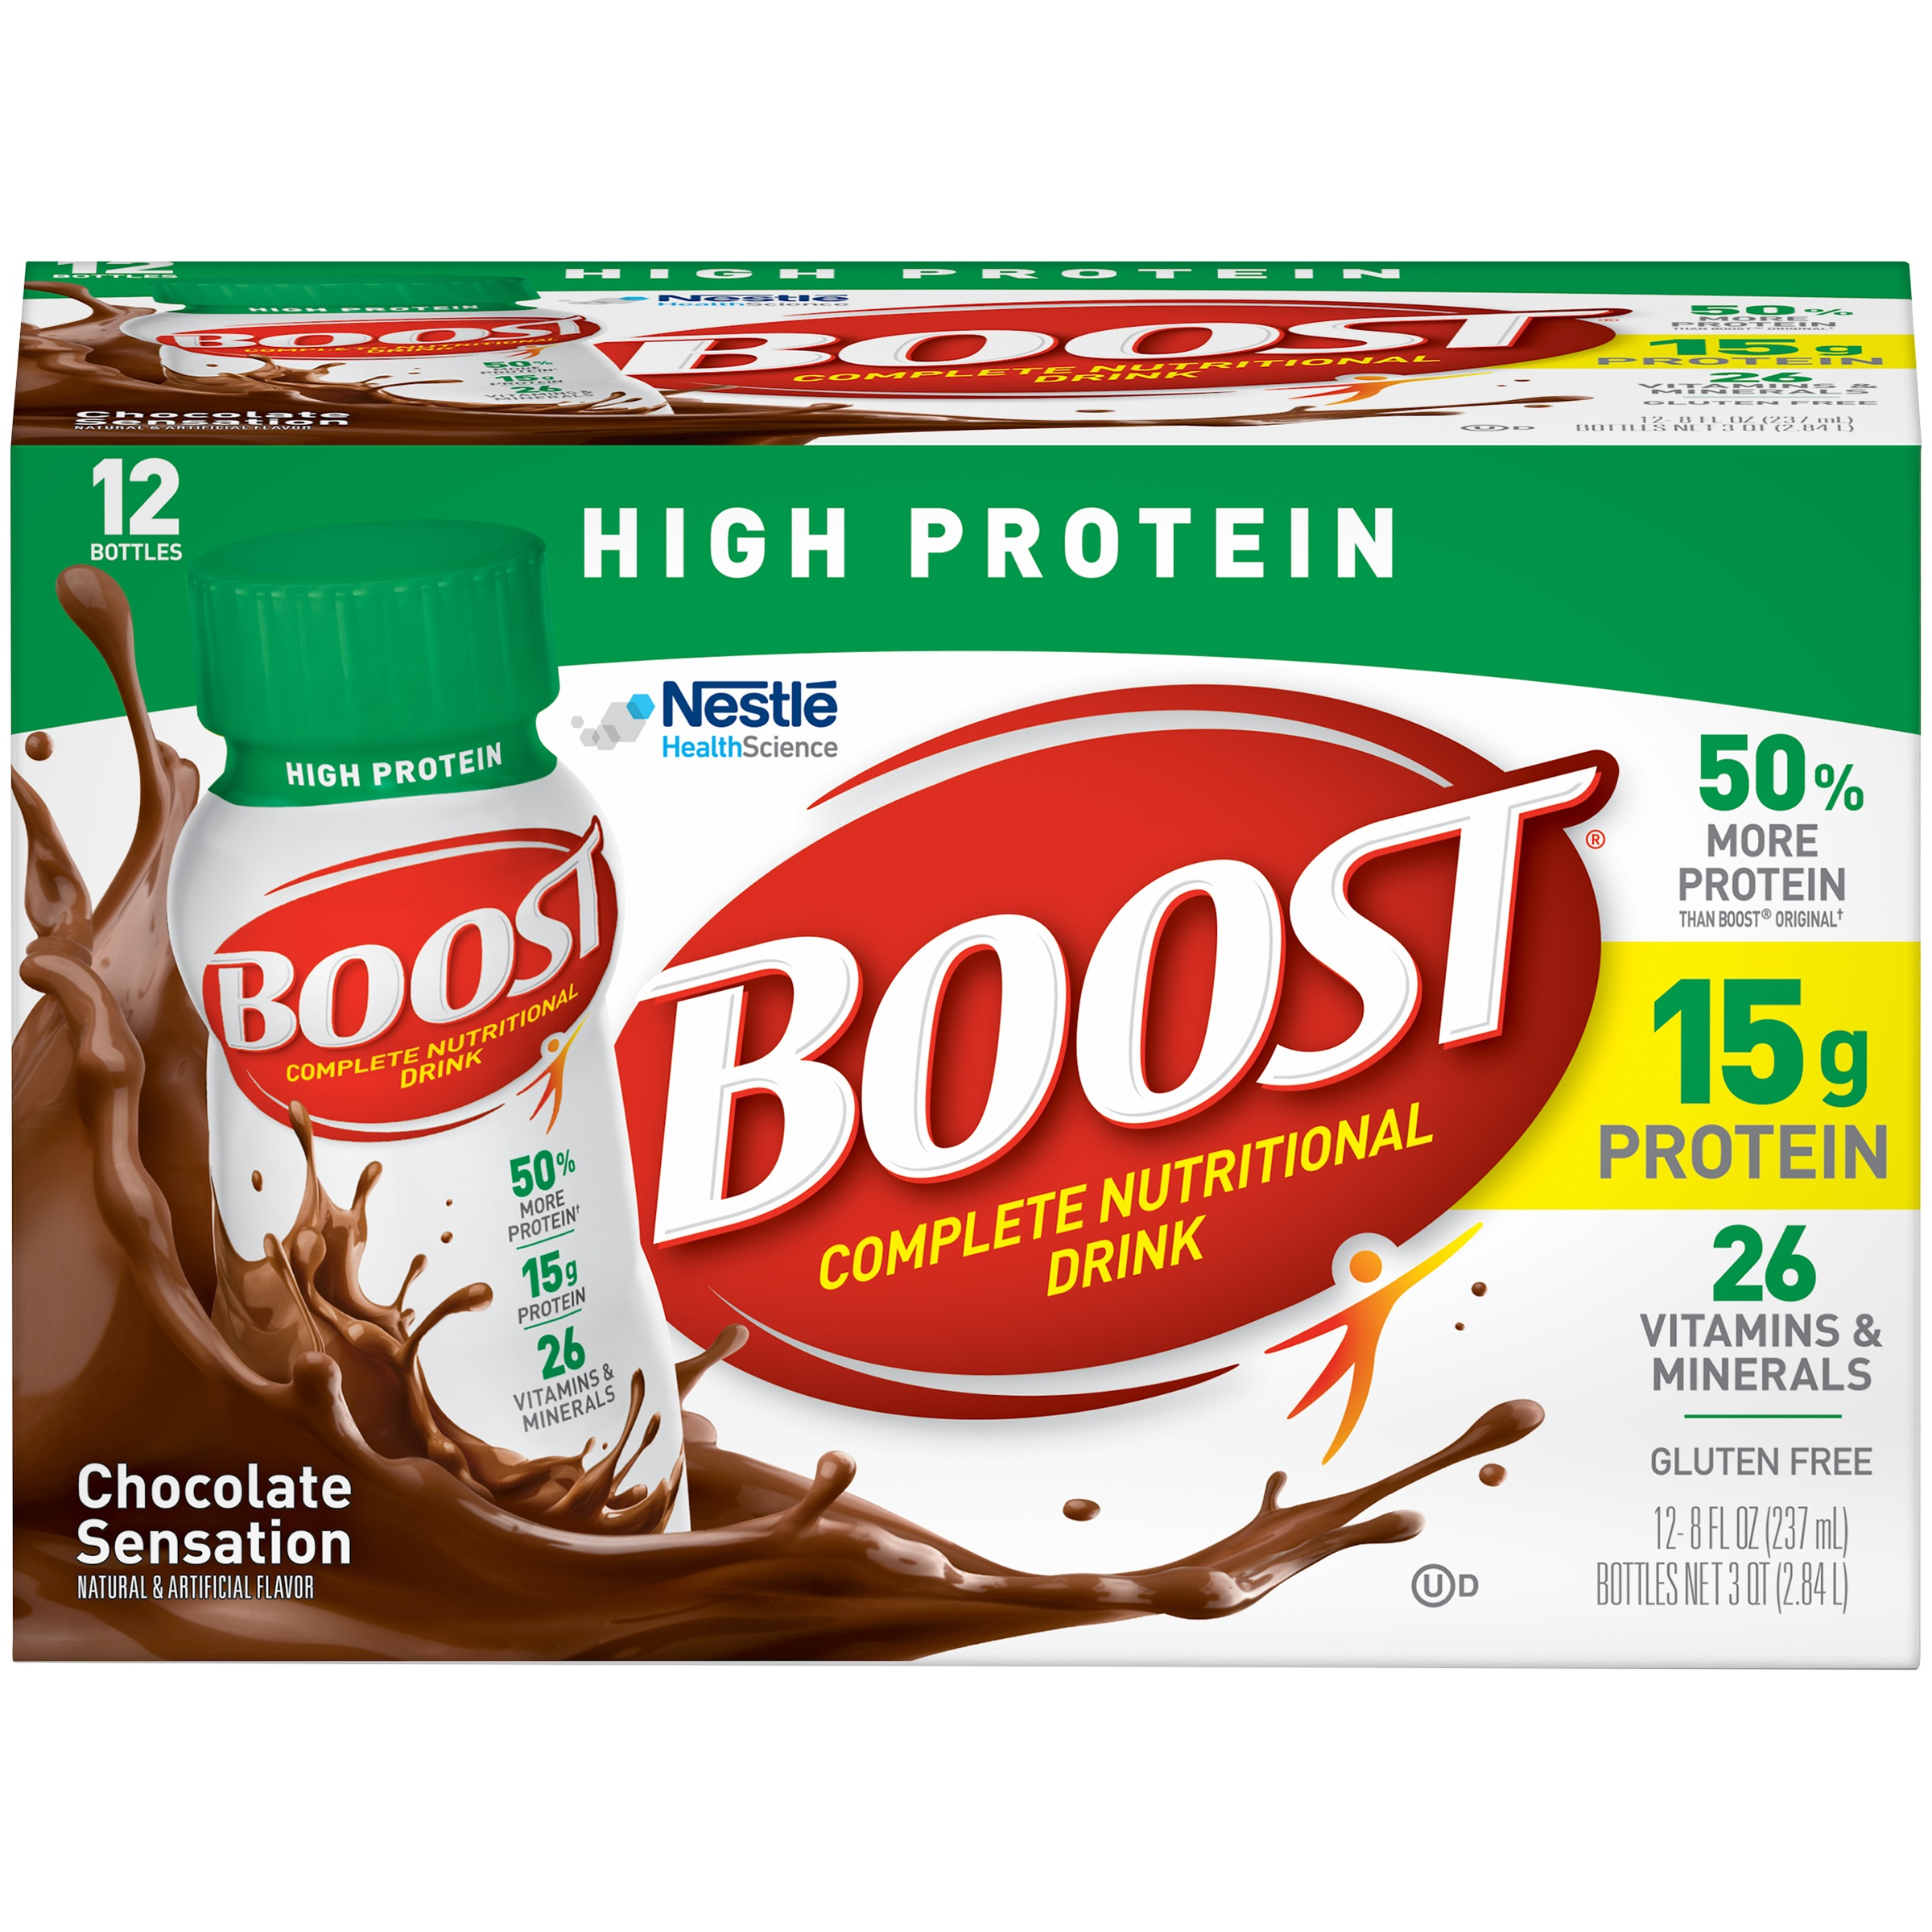 Boost, High Protein, Complete Nutritional Drink, Chocolate Sensation, 8 Fl oz Bottle, 12 Ct